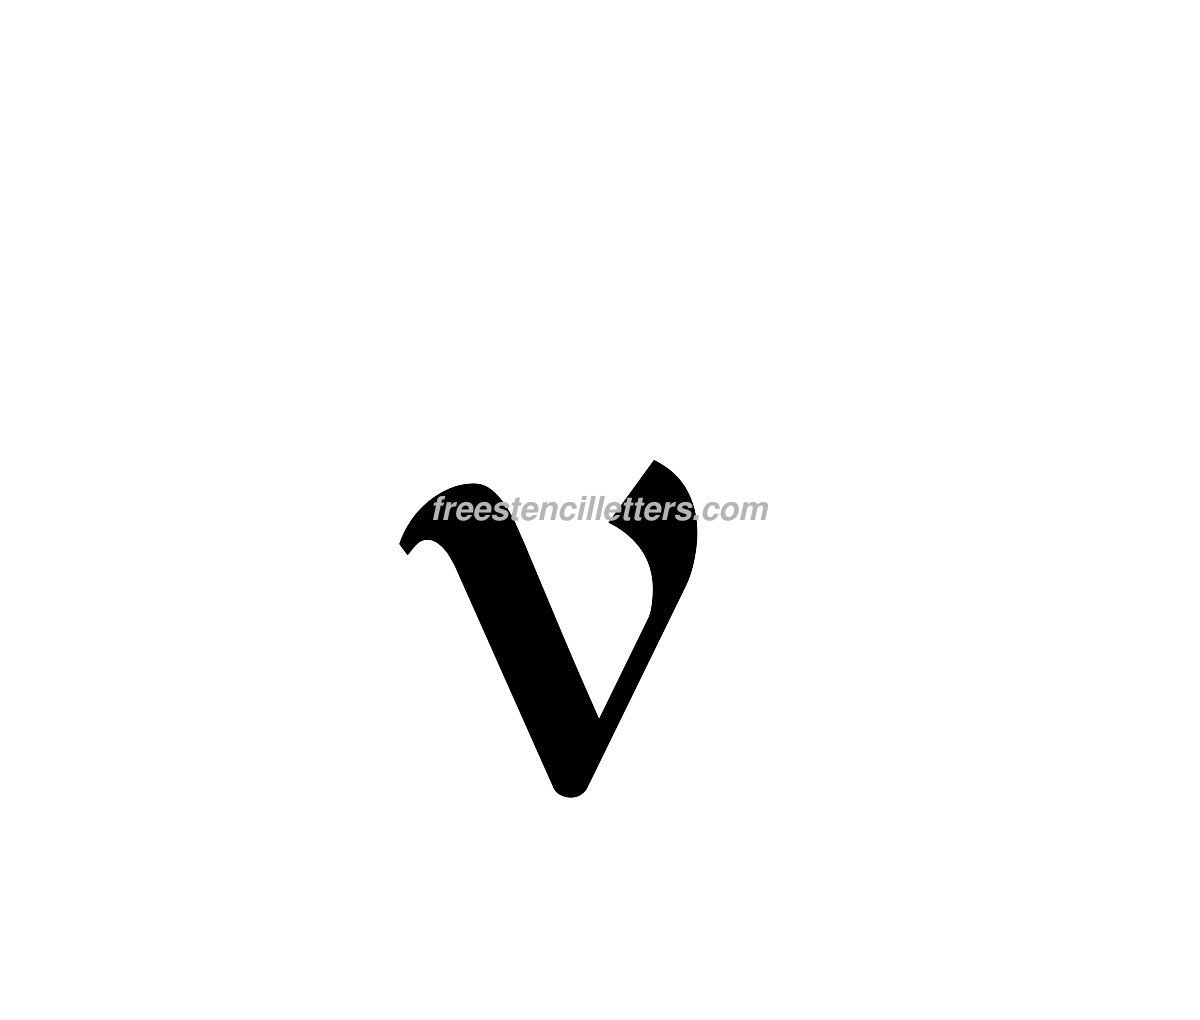 Print lowercase v letter stencil free stencil letters download print lowercase v letter stencil to print and cut out thecheapjerseys Choice Image